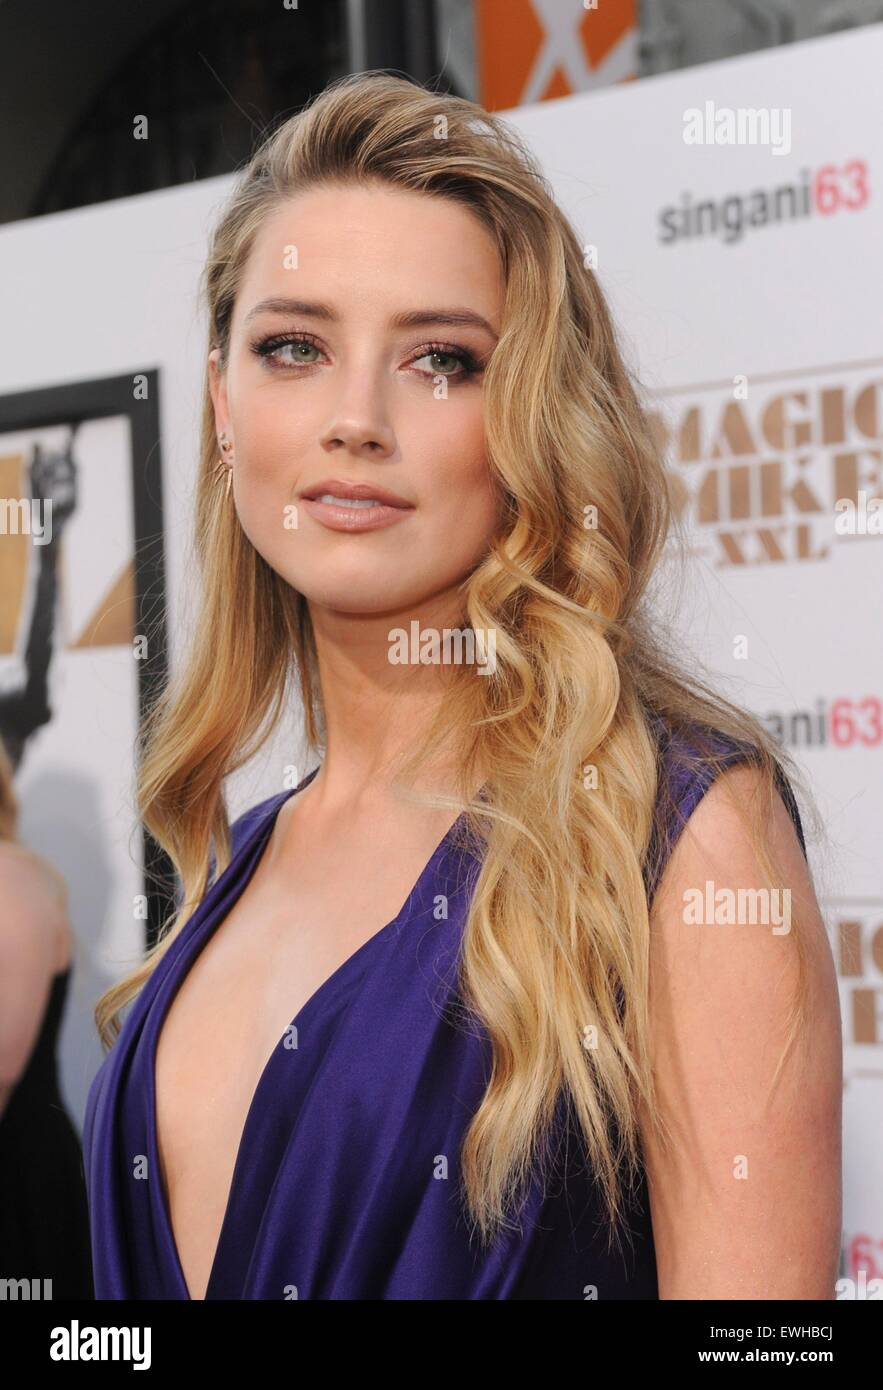 los angeles ca usa 25th june 2015 amber heard at. Black Bedroom Furniture Sets. Home Design Ideas